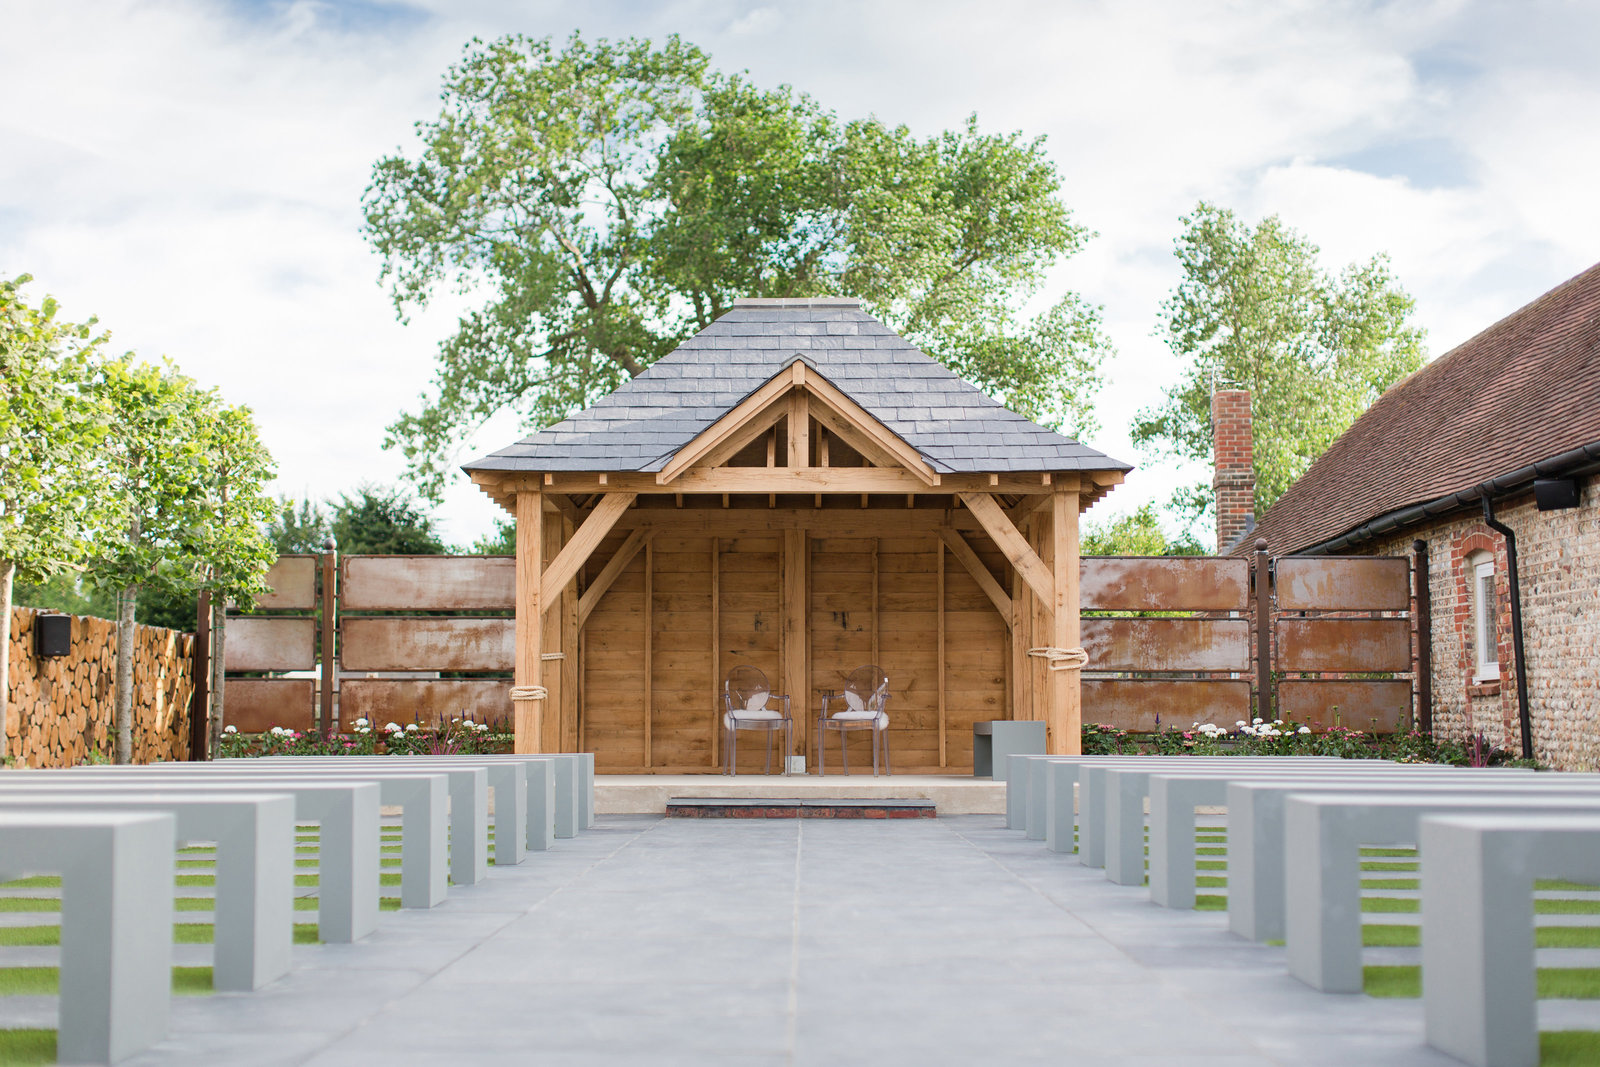 adorlee-2304-southend-barns-new-outdoor-ceremony